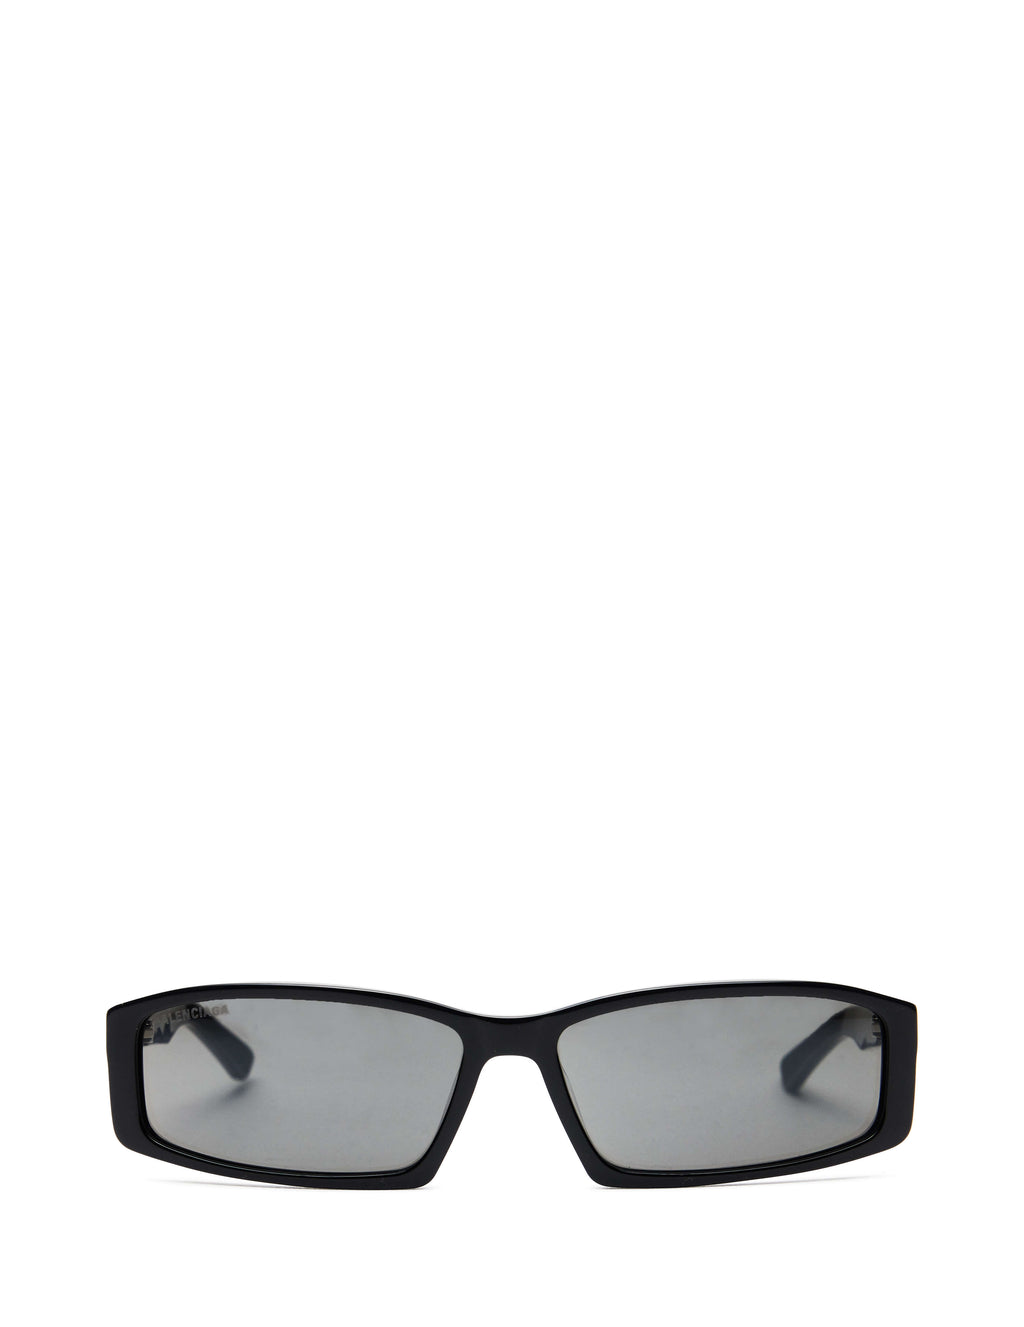 a7bda3762030 Balenciaga Eyewear Unisex Giulio Fashion Black Neo Square Sunglasses  BB0008S001